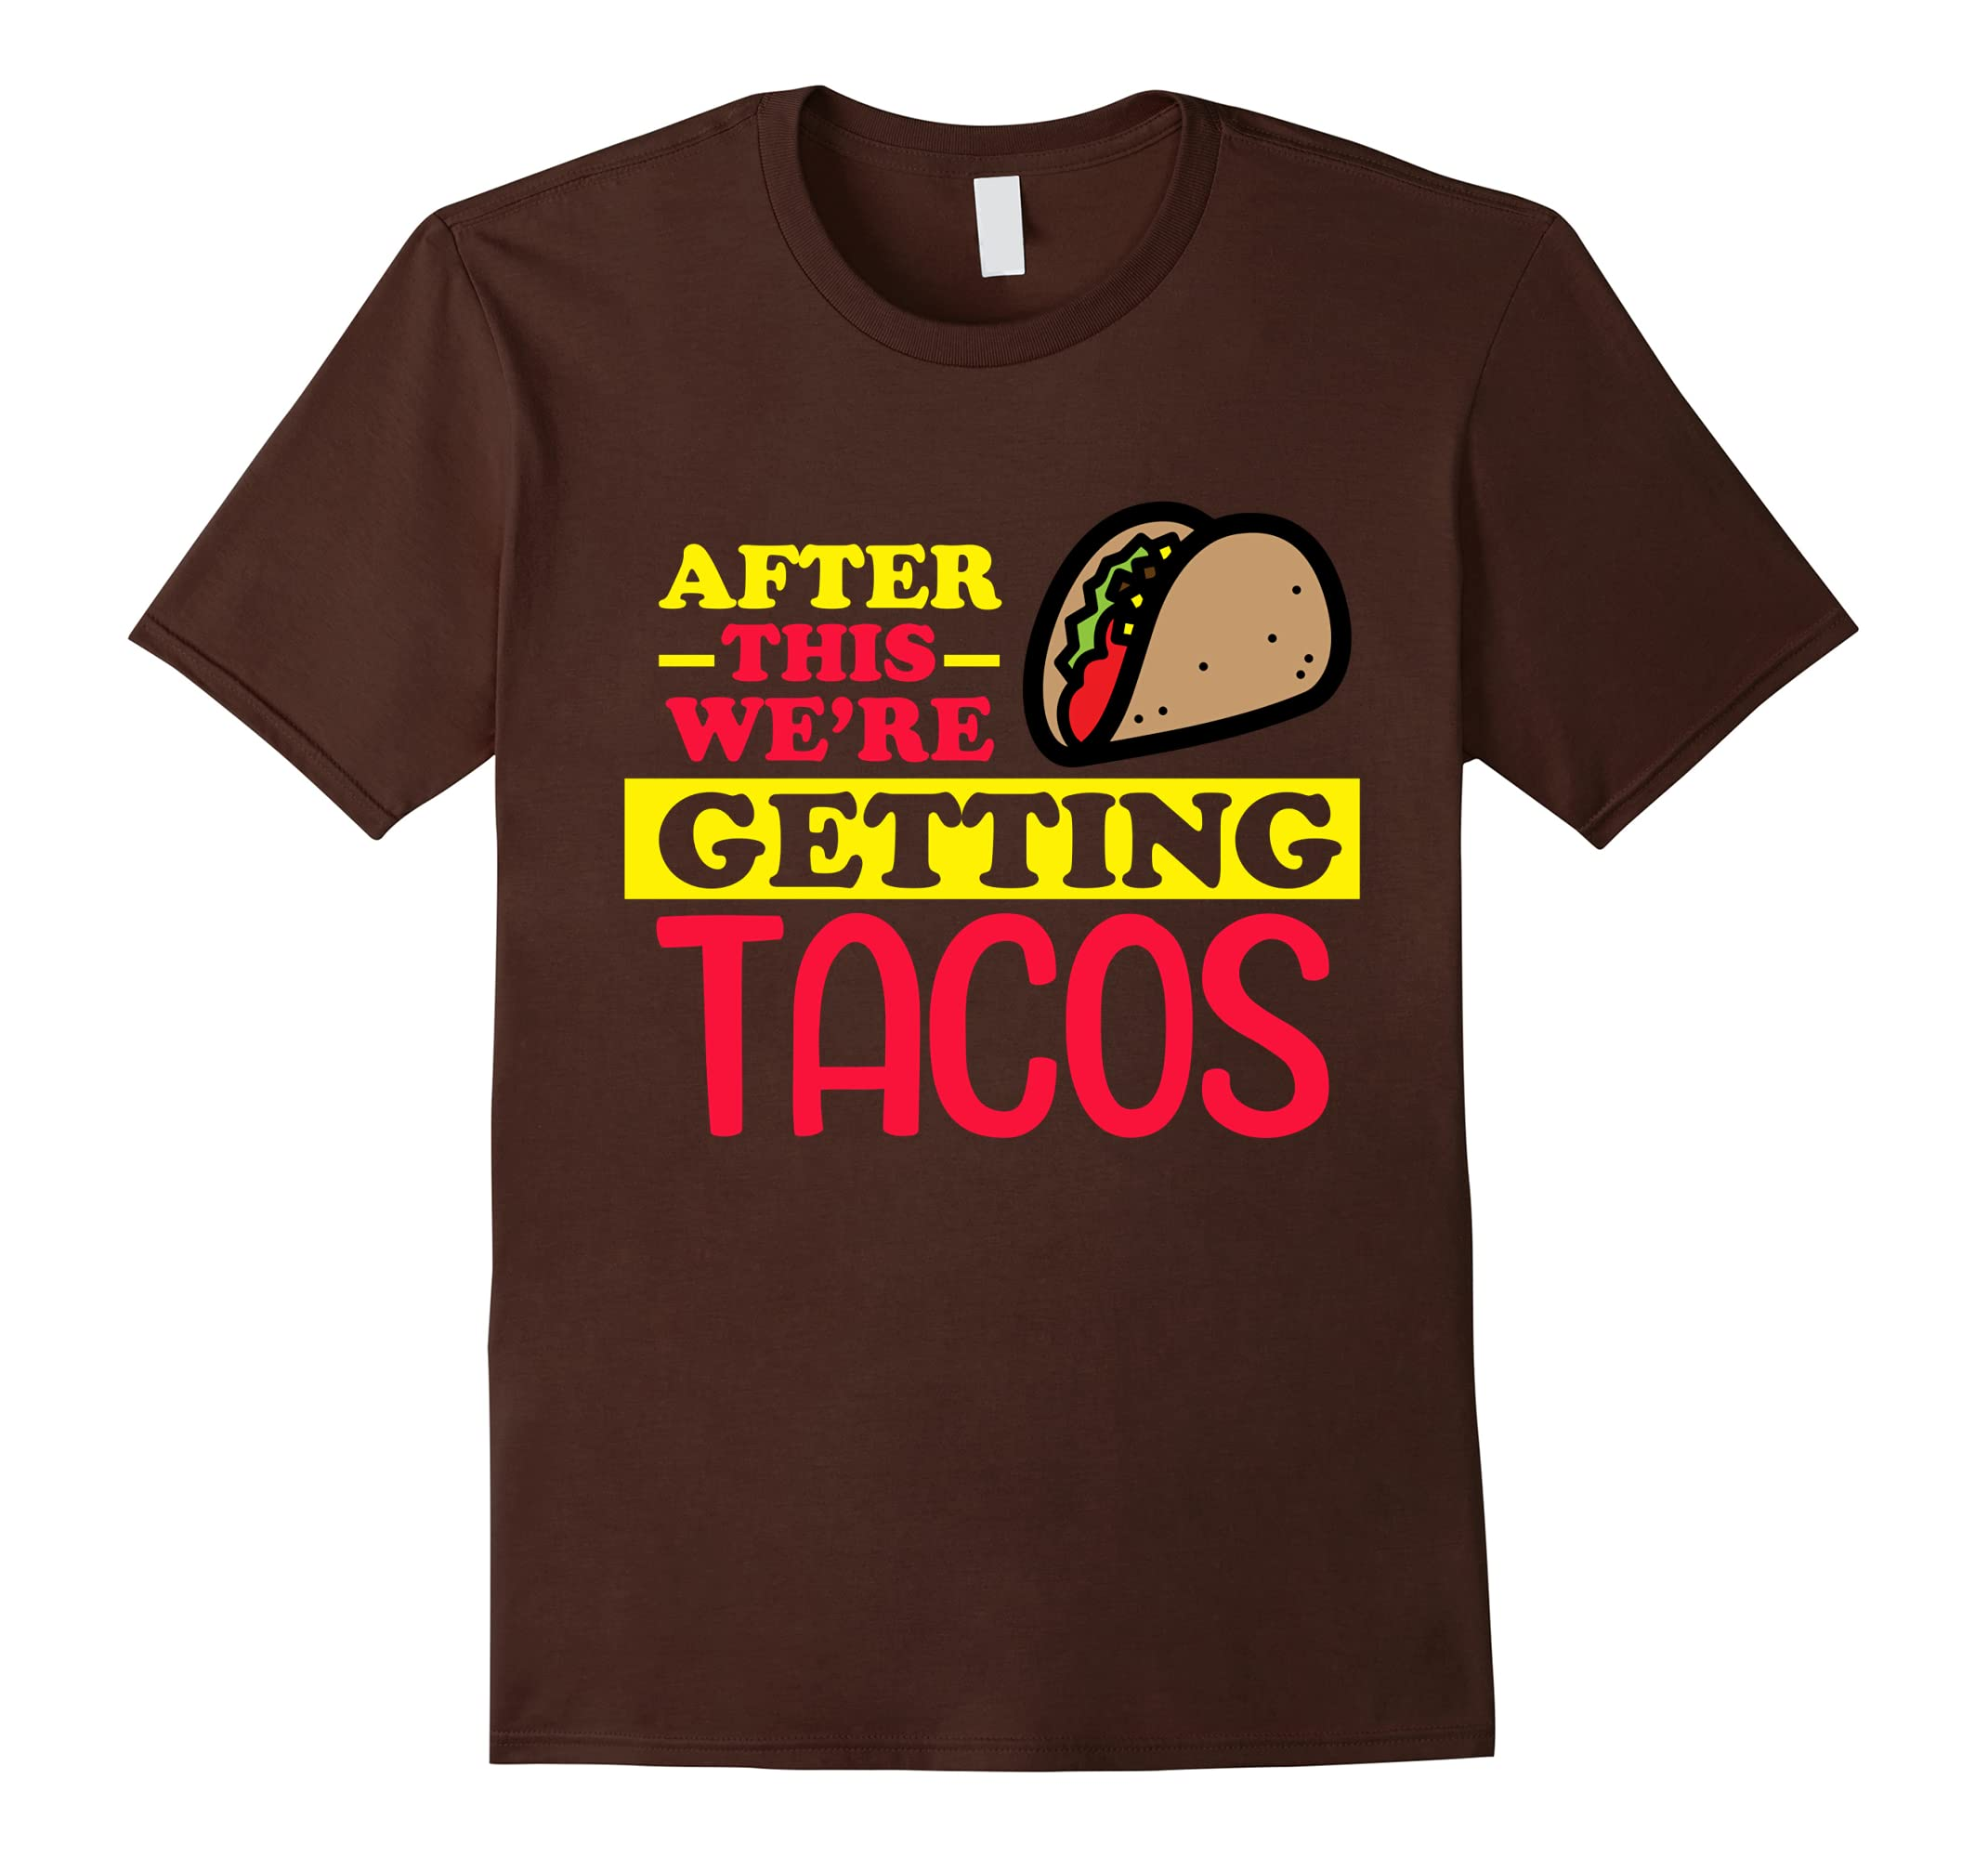 After This We're Getting Tacos Tshirt: Funny Sarcastic Shirt-RT